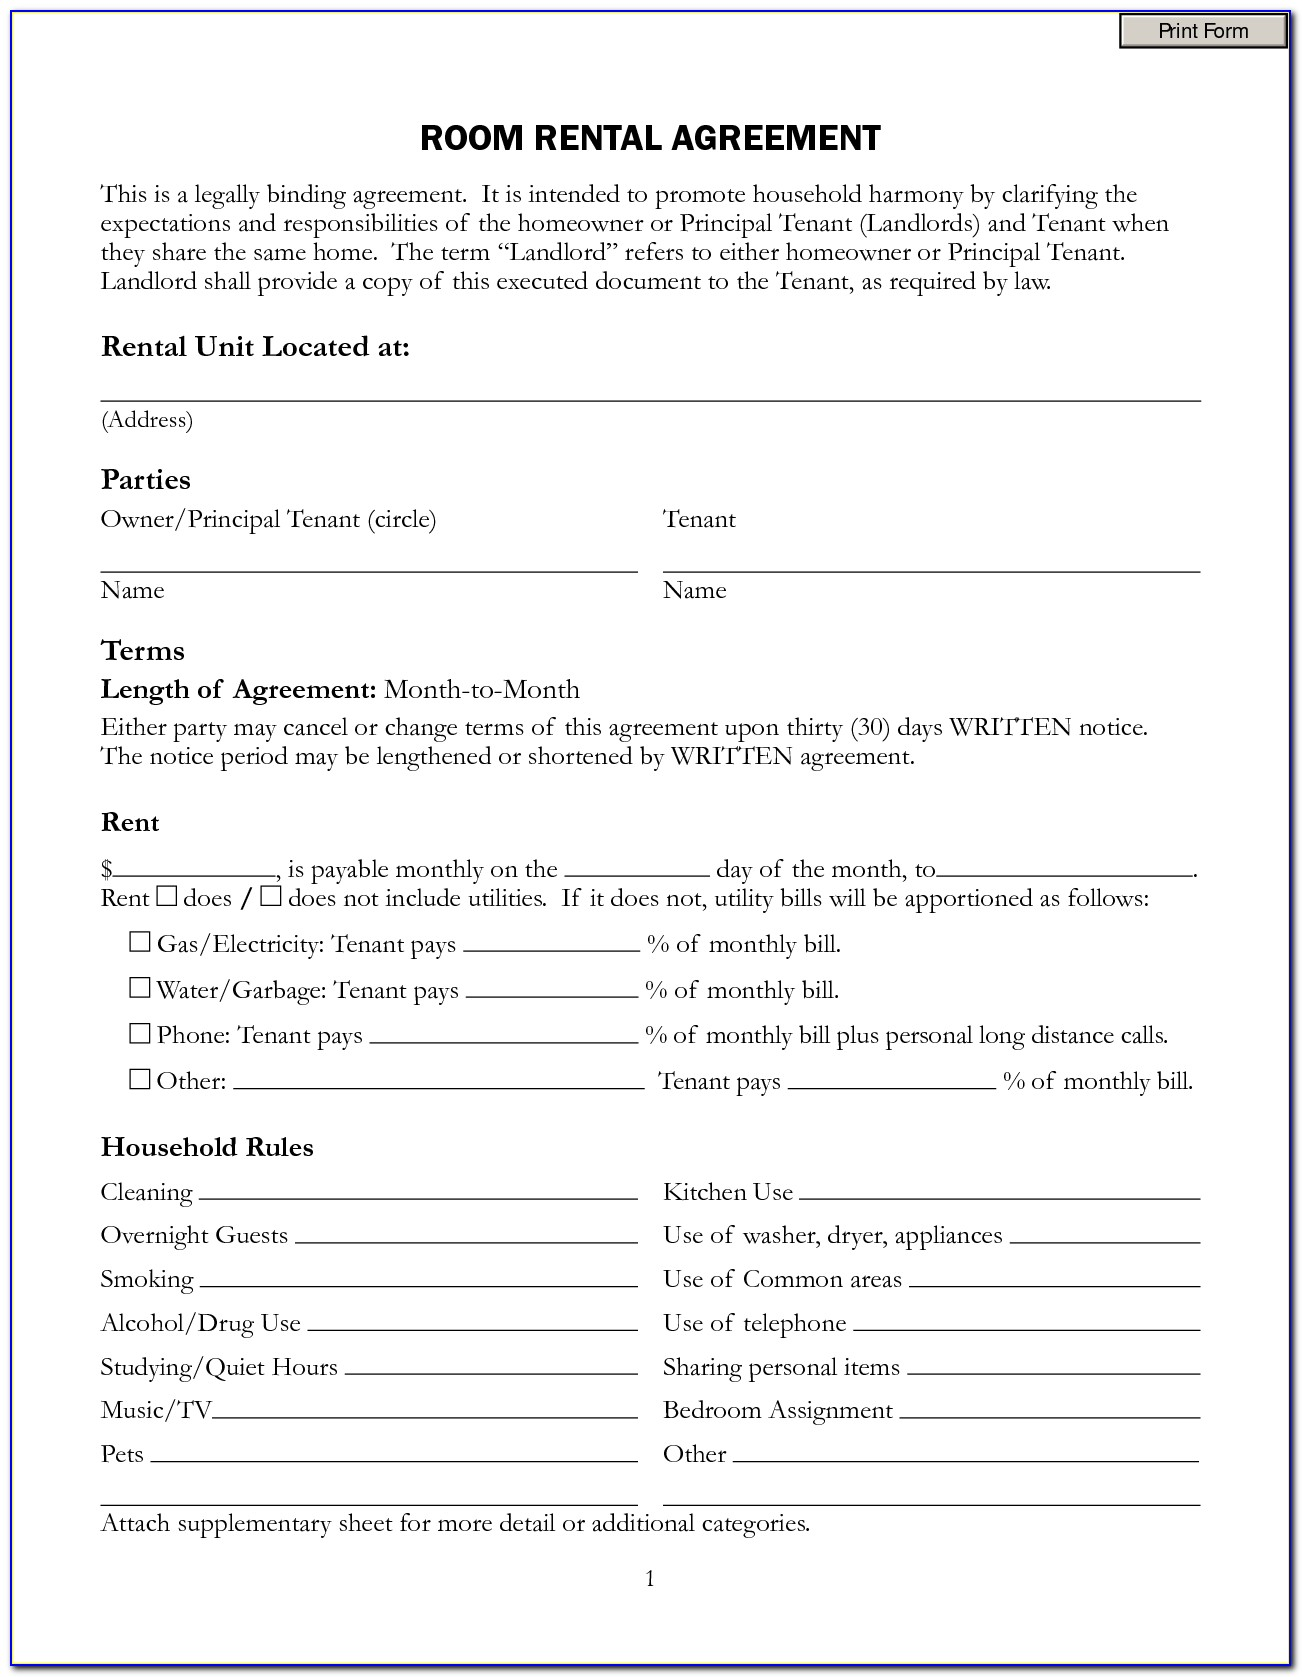 Residential Room Rental Agreement Form Free